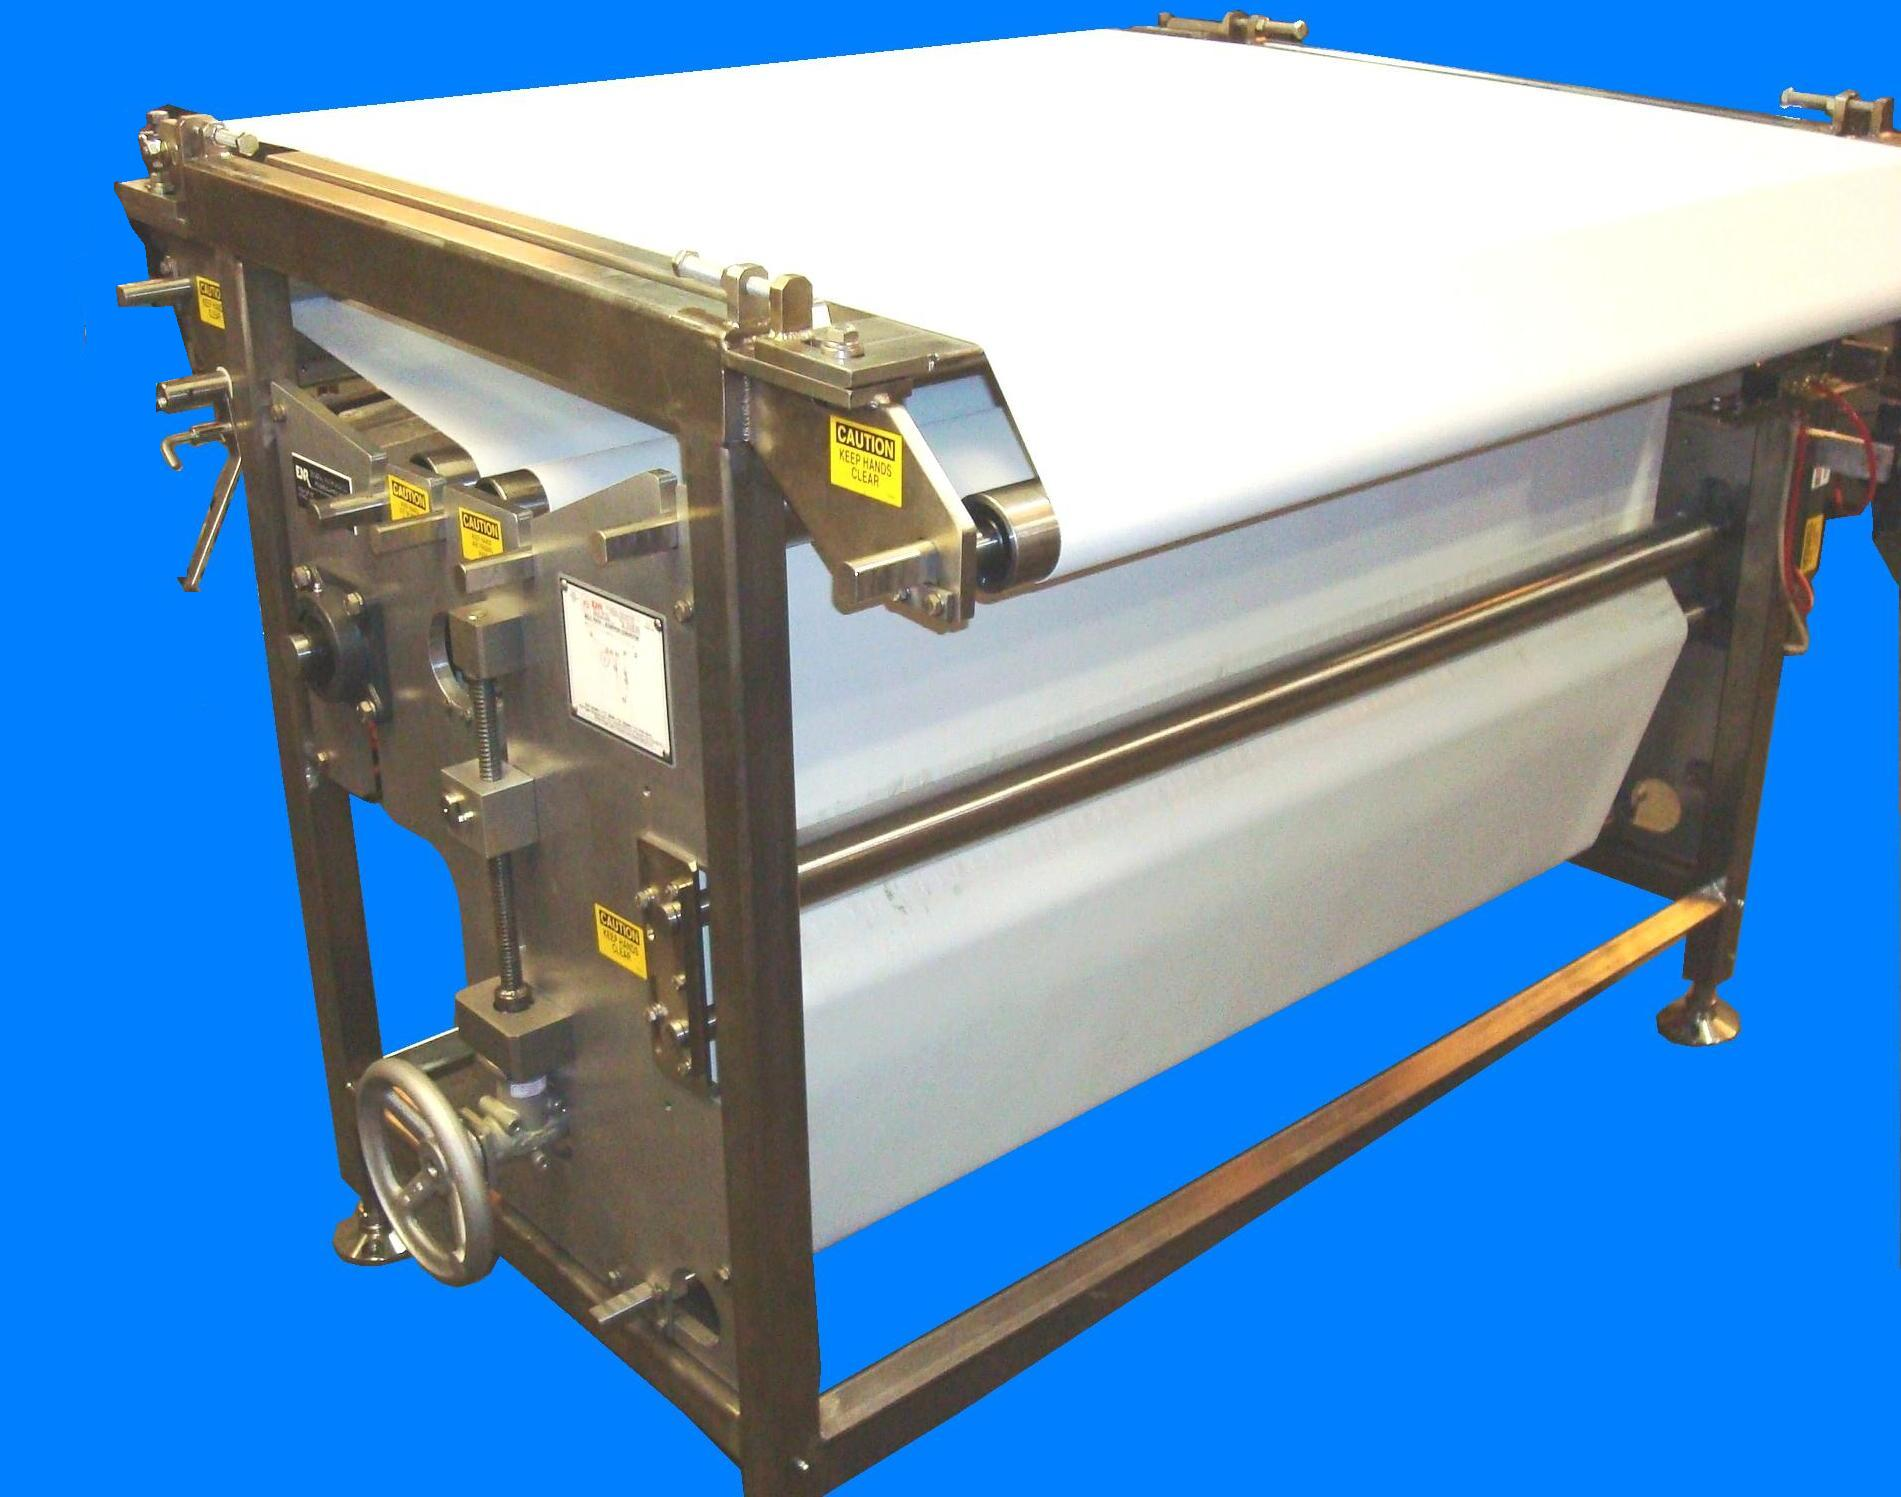 3. Stripper Conveyor